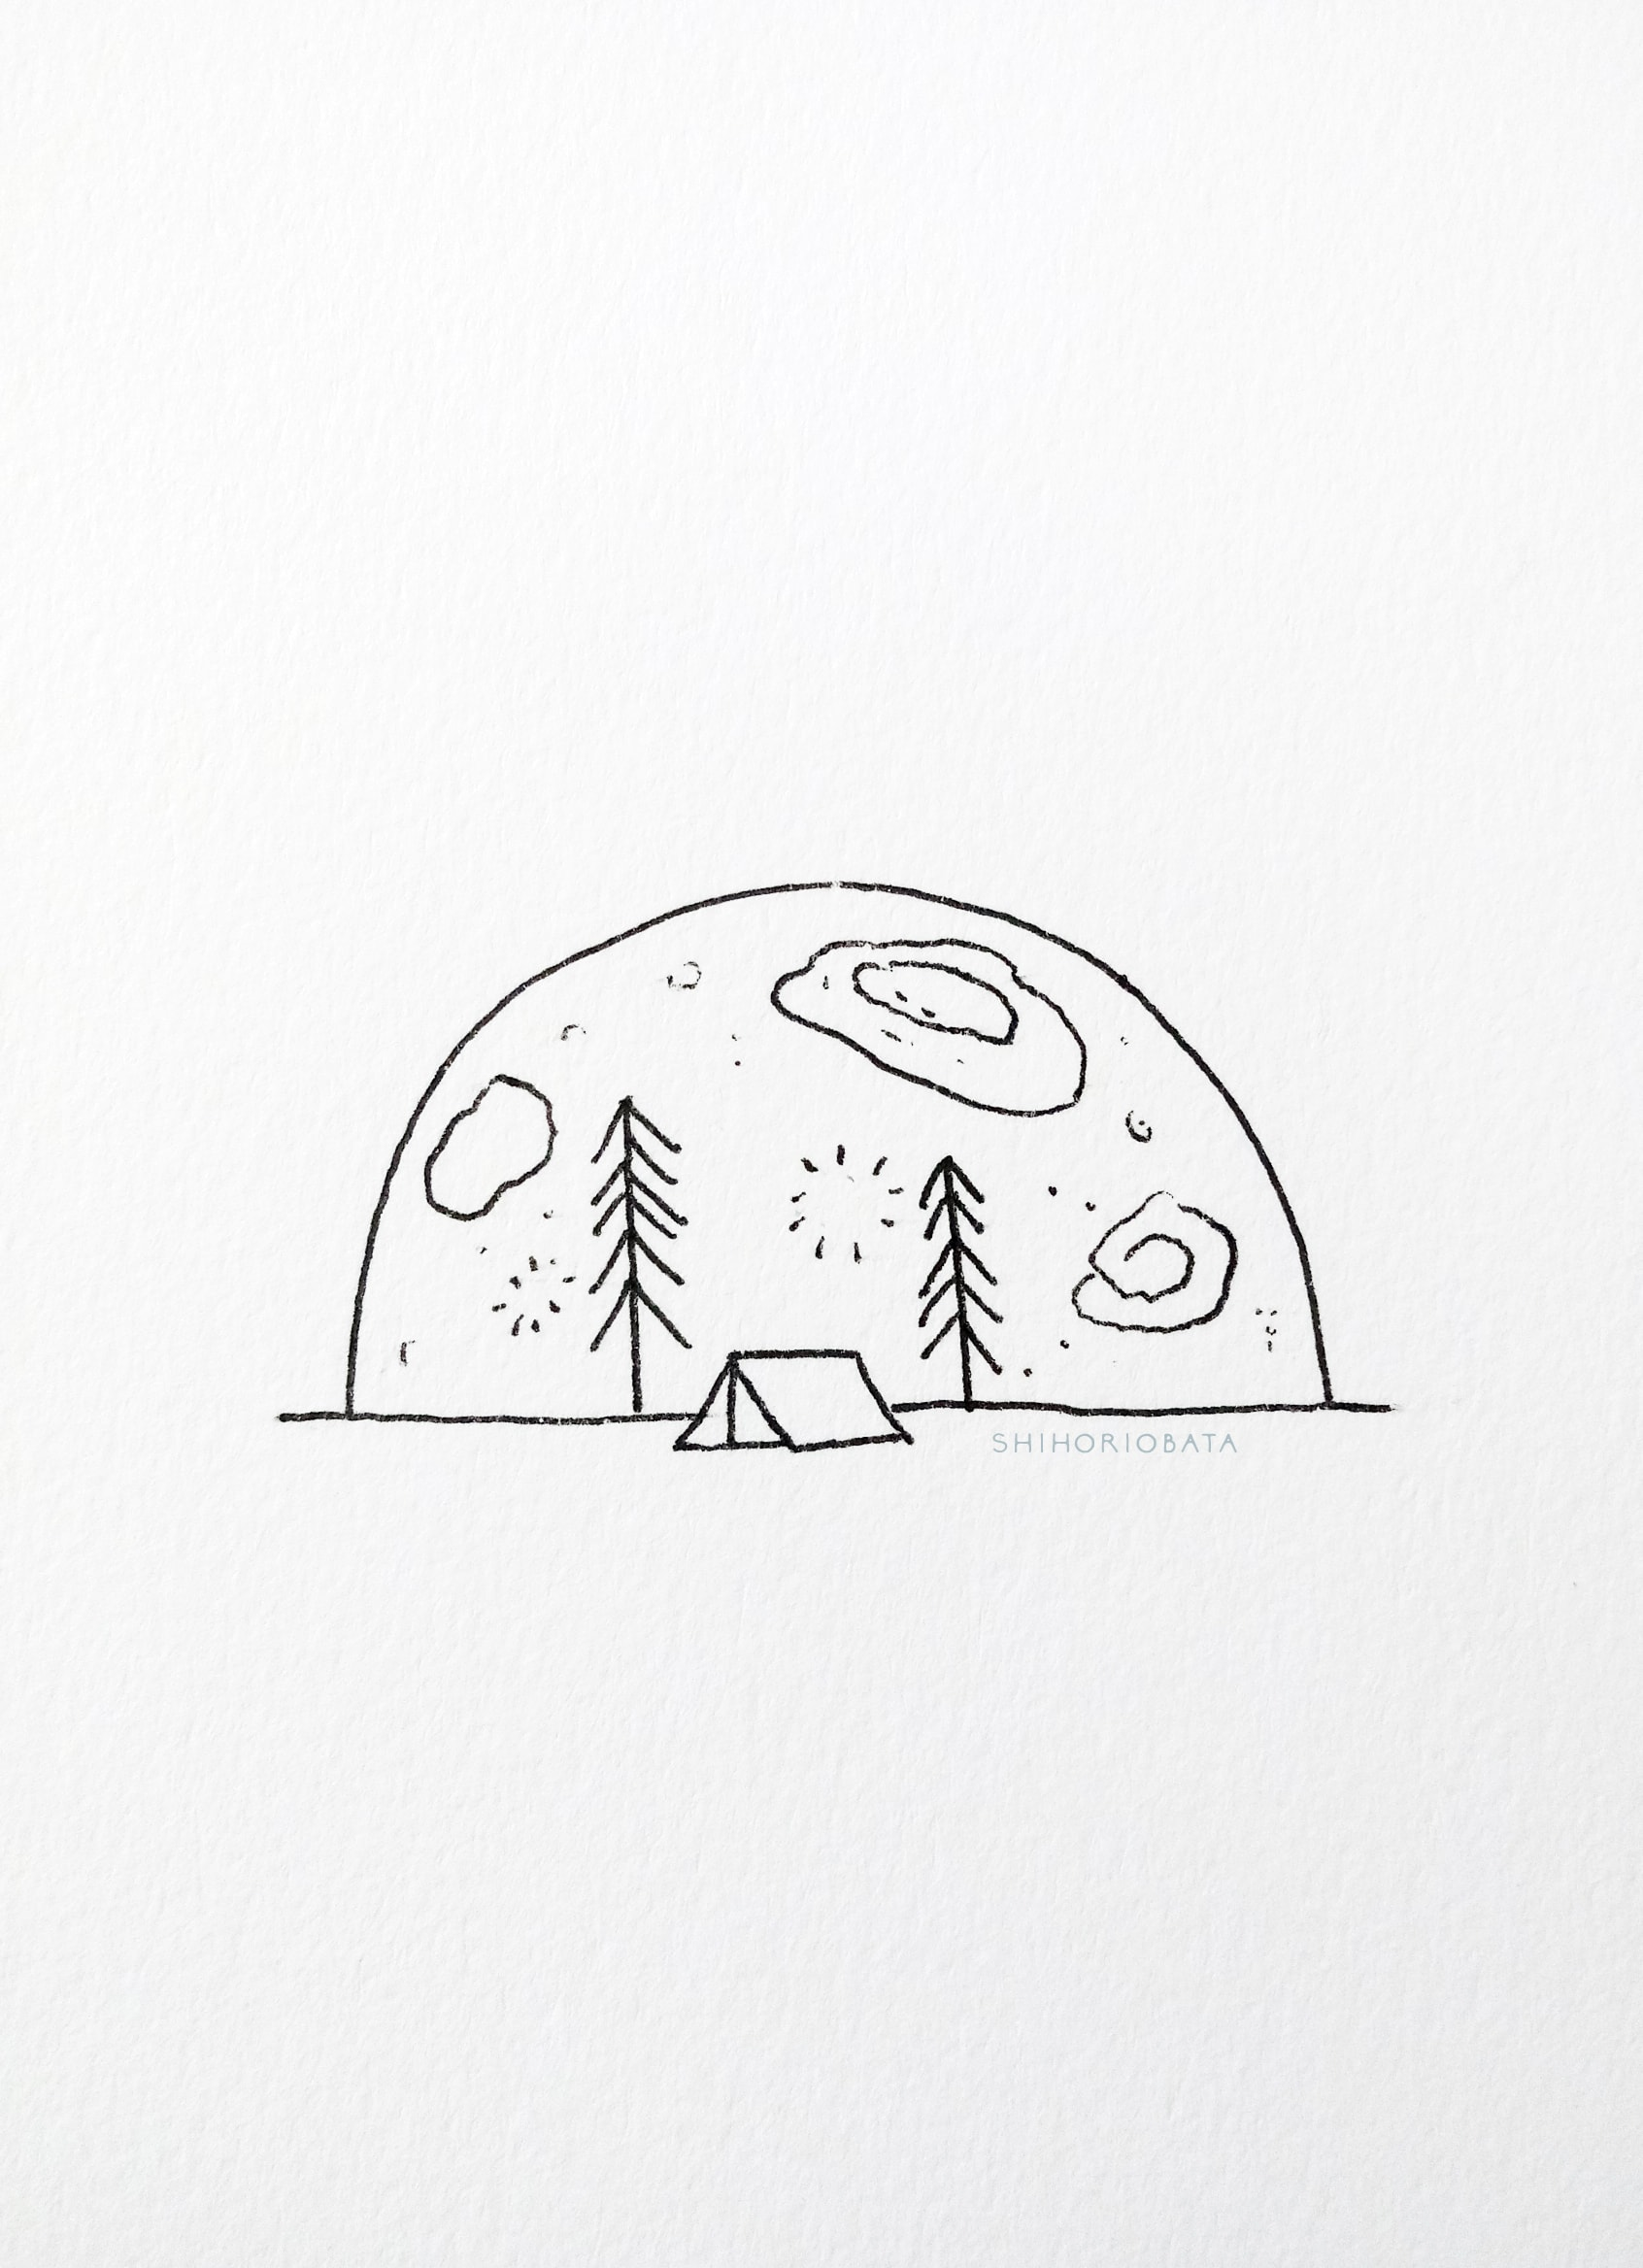 Rising Moon Drawing - Easy Creative Drawing Ideas